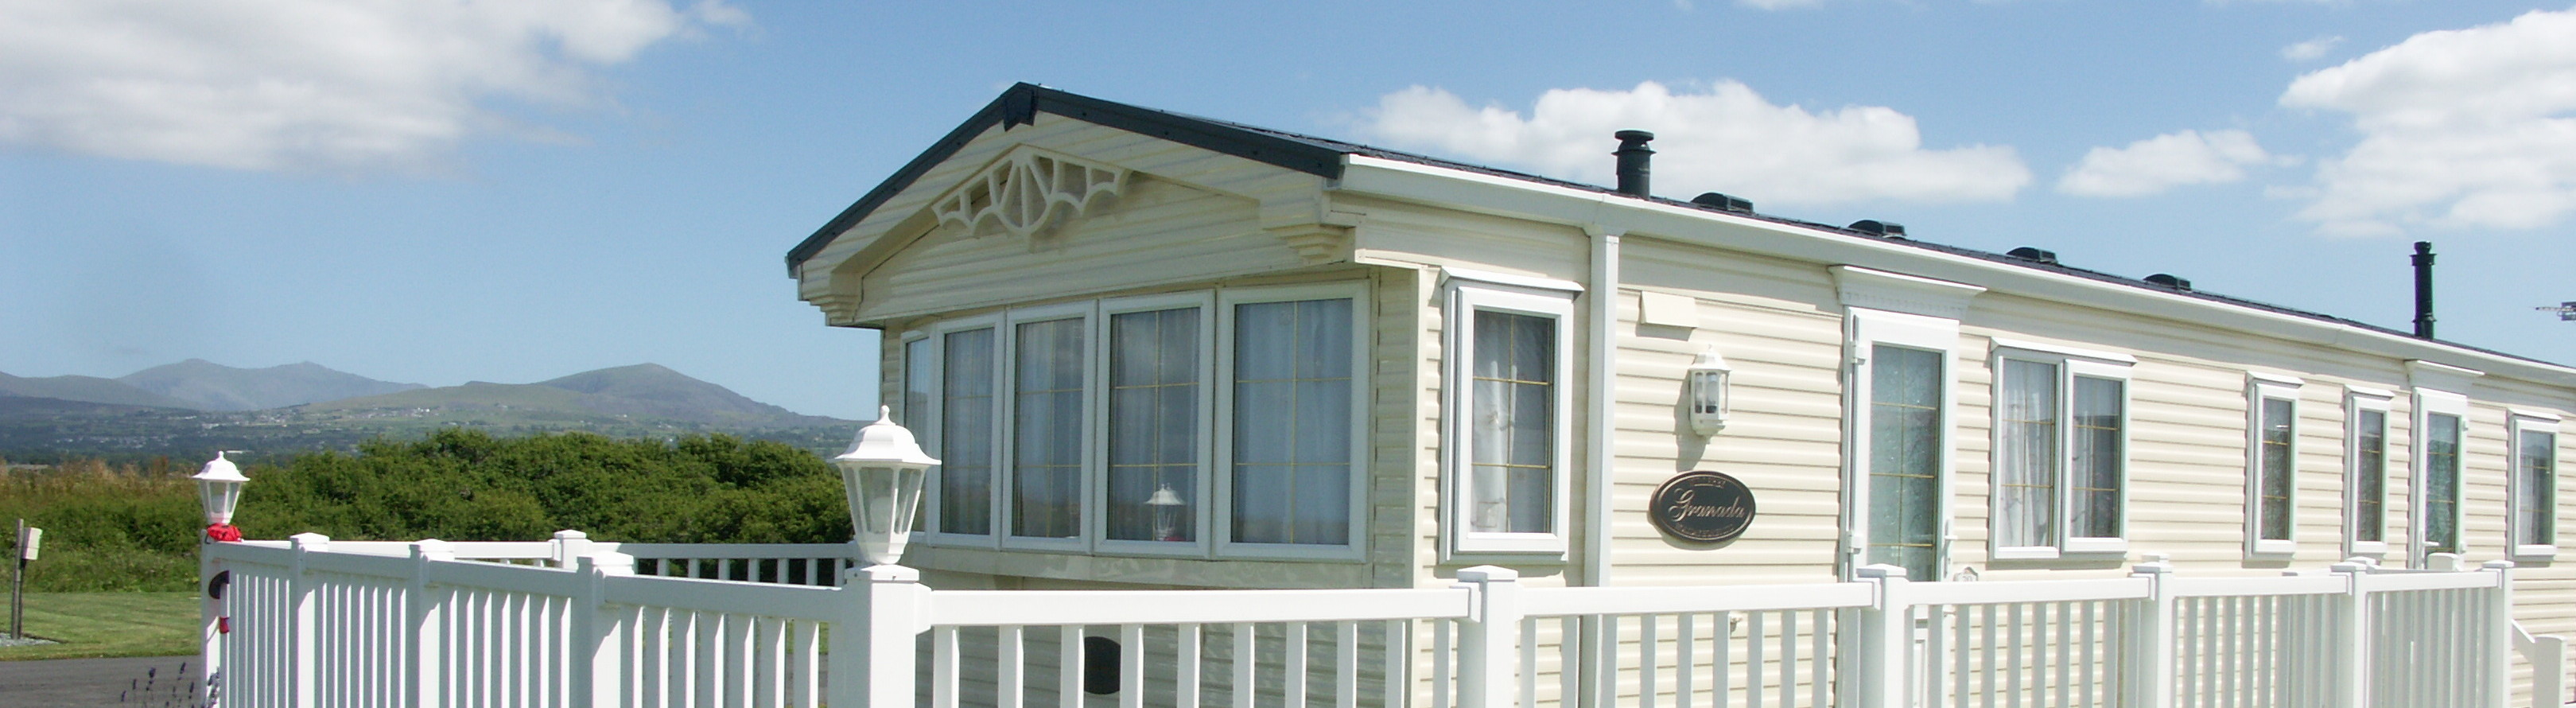 Holiday Home Tariff